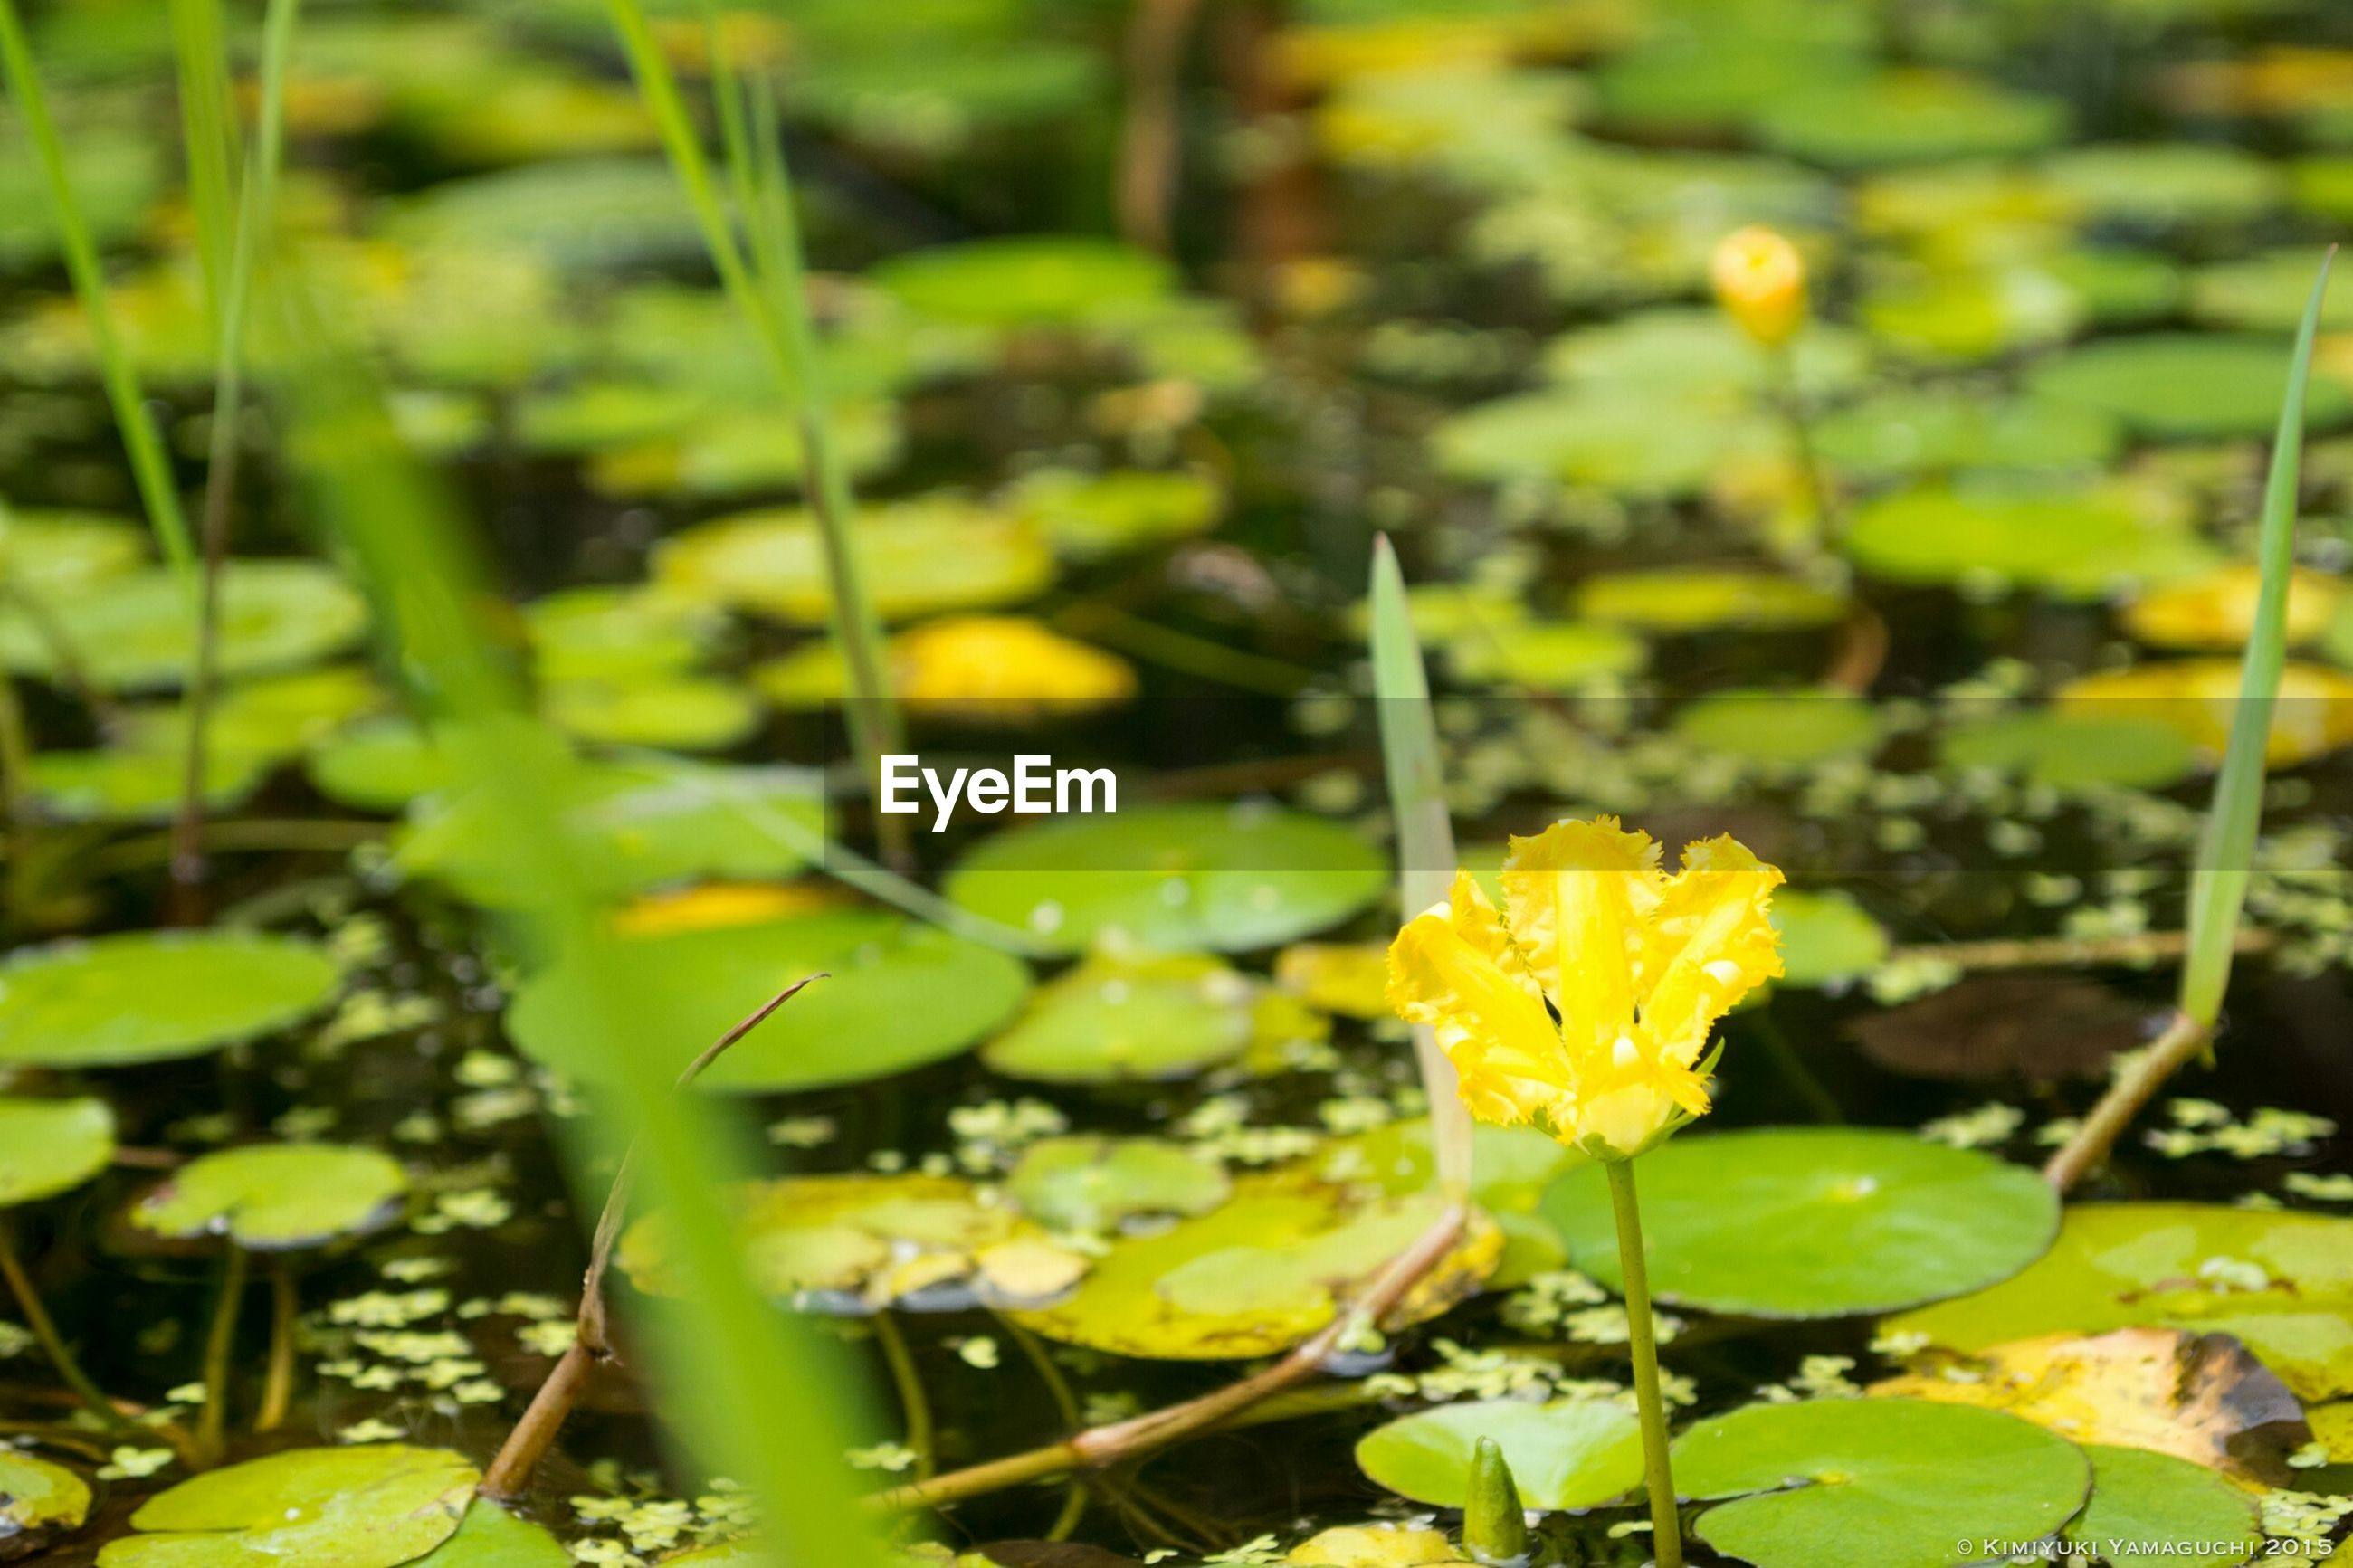 flower, growth, yellow, freshness, fragility, leaf, plant, petal, beauty in nature, nature, water, green color, focus on foreground, blooming, flower head, close-up, pond, stem, outdoors, day